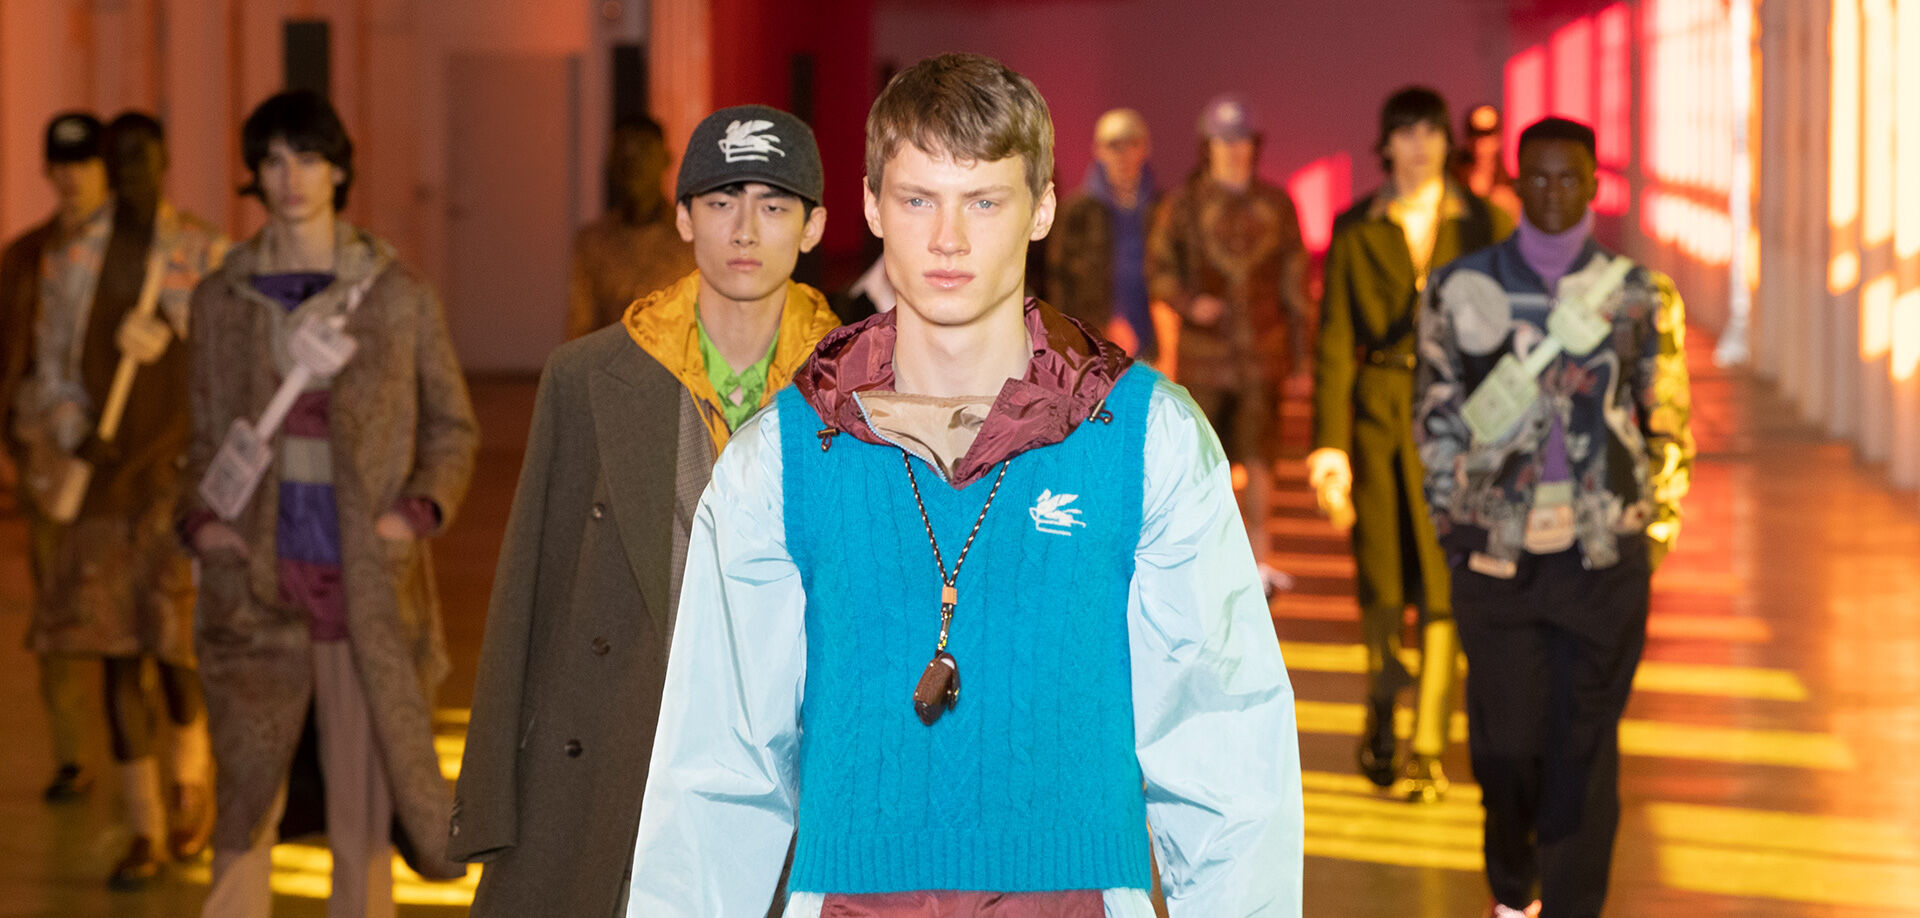 ETRO_MEN'S FALL-WINTER 2021 FASHION SHOW